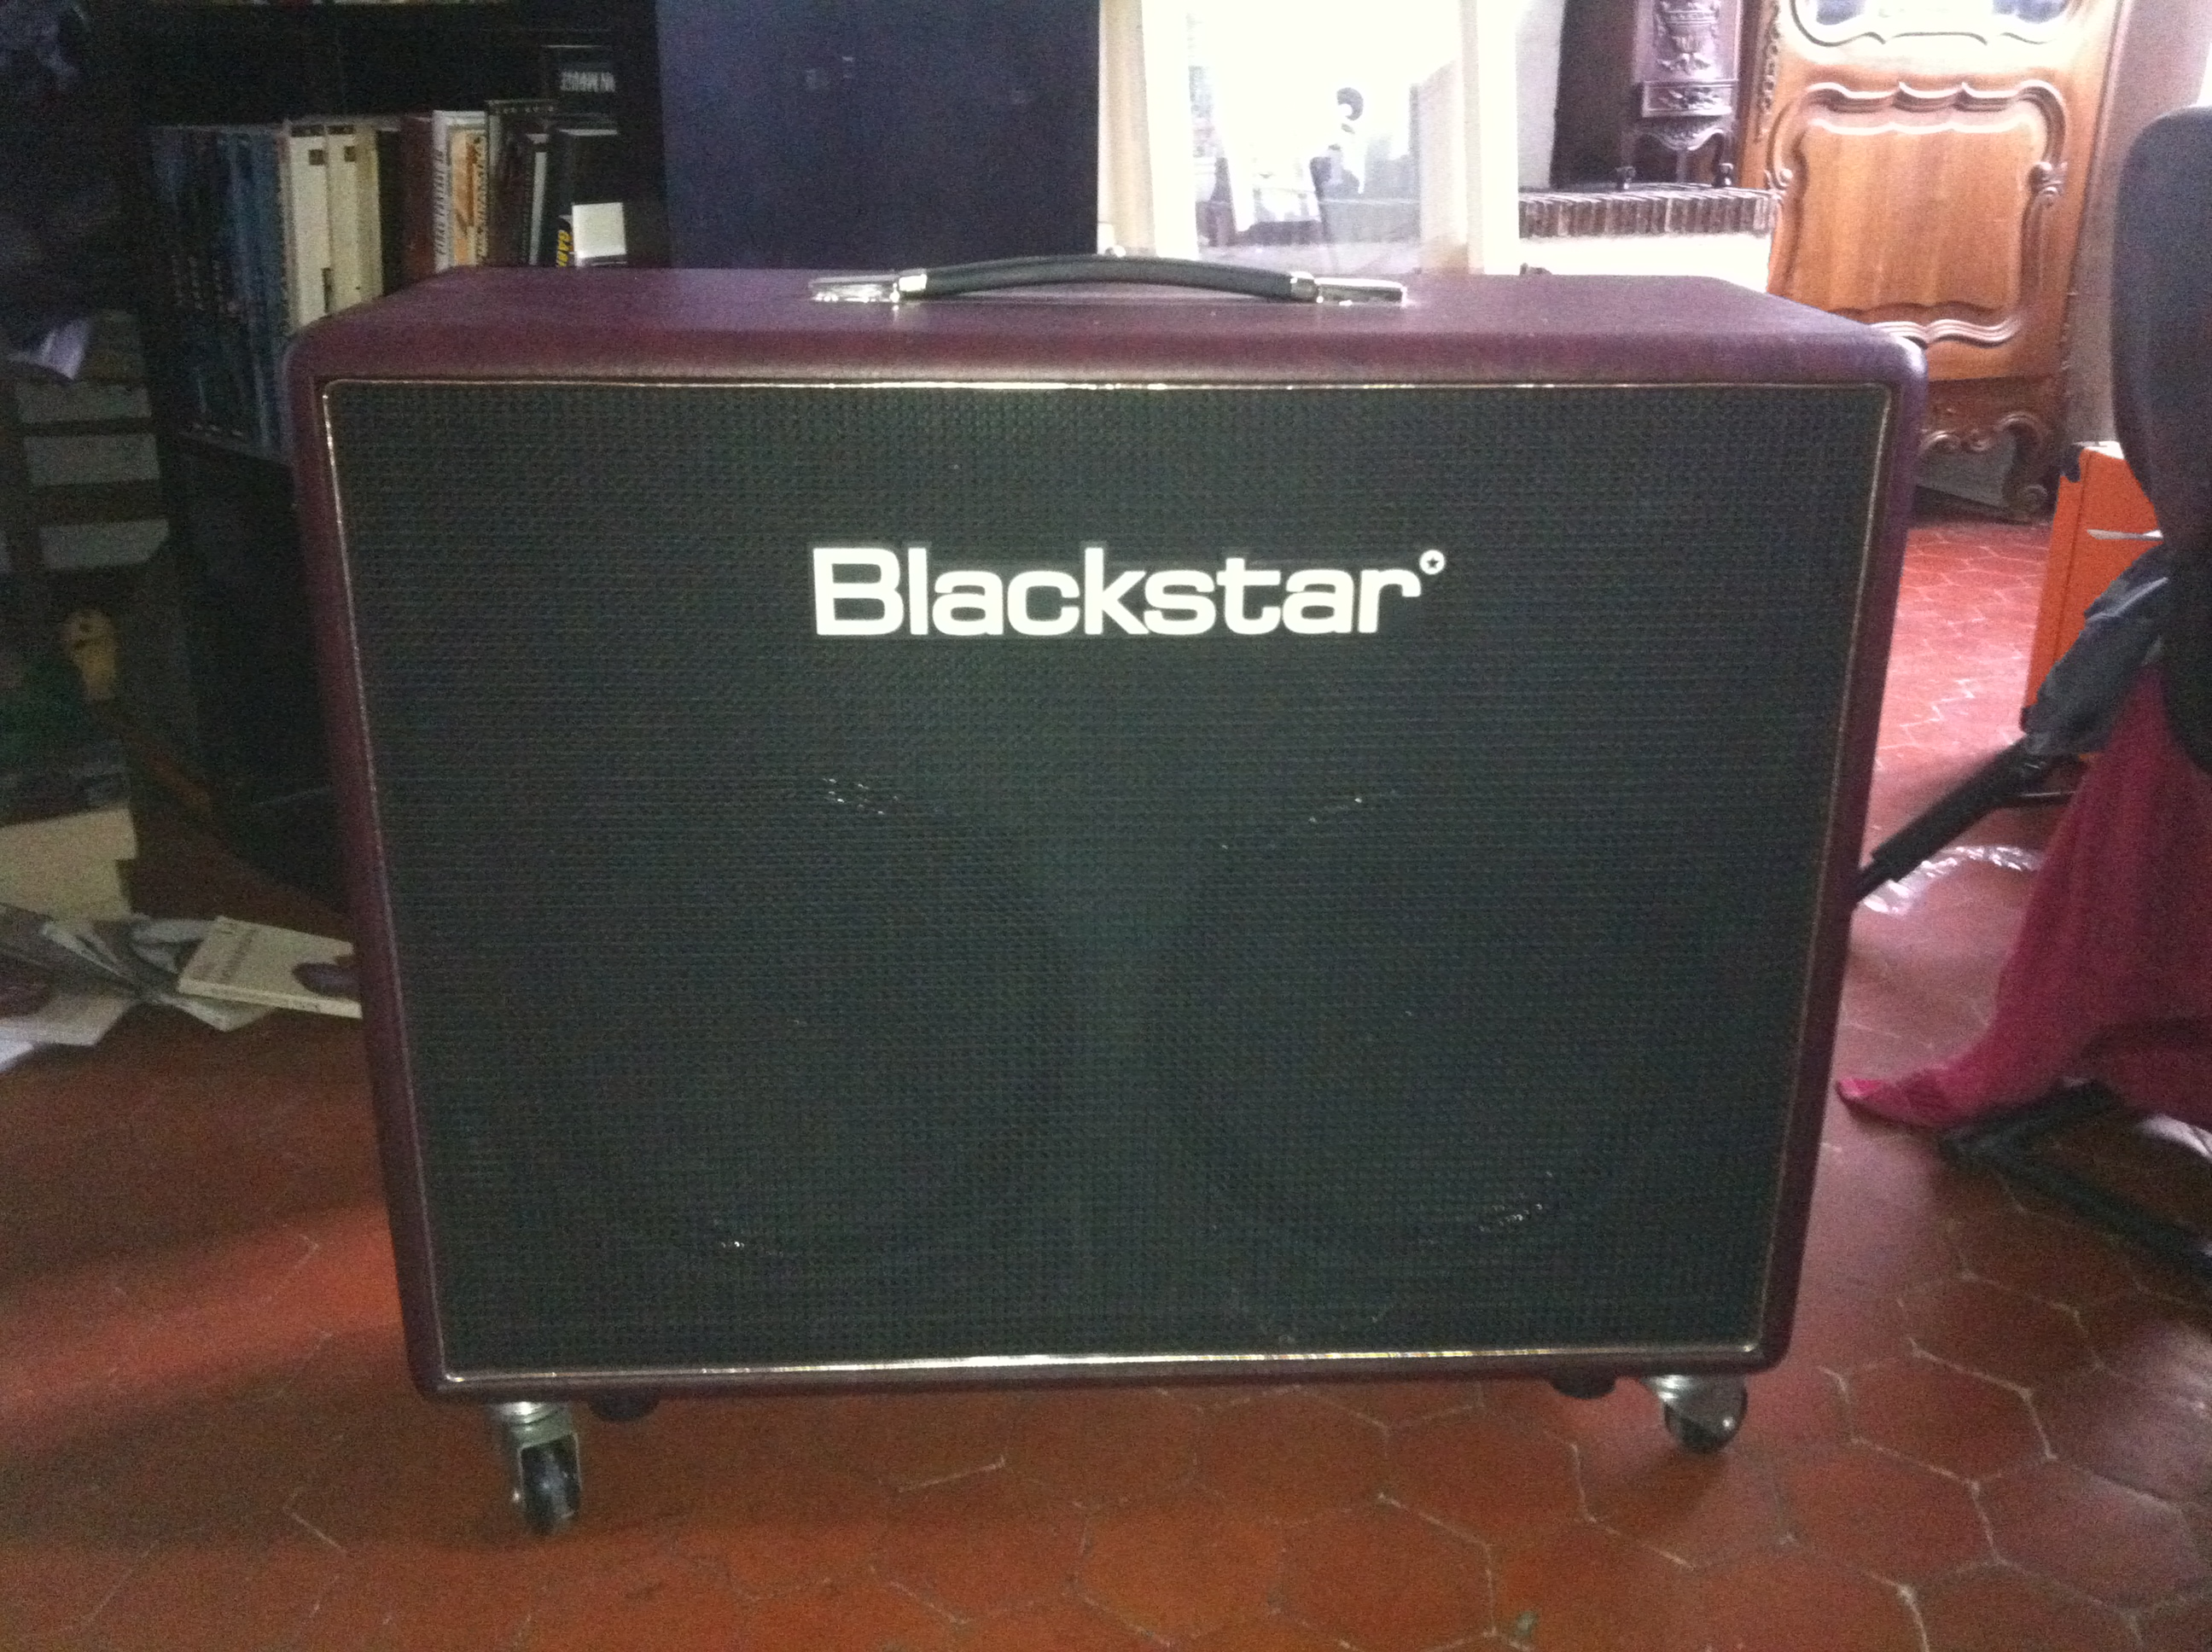 Blackstar Amplification Artisan 212 image (#292337) - Audiofanzine